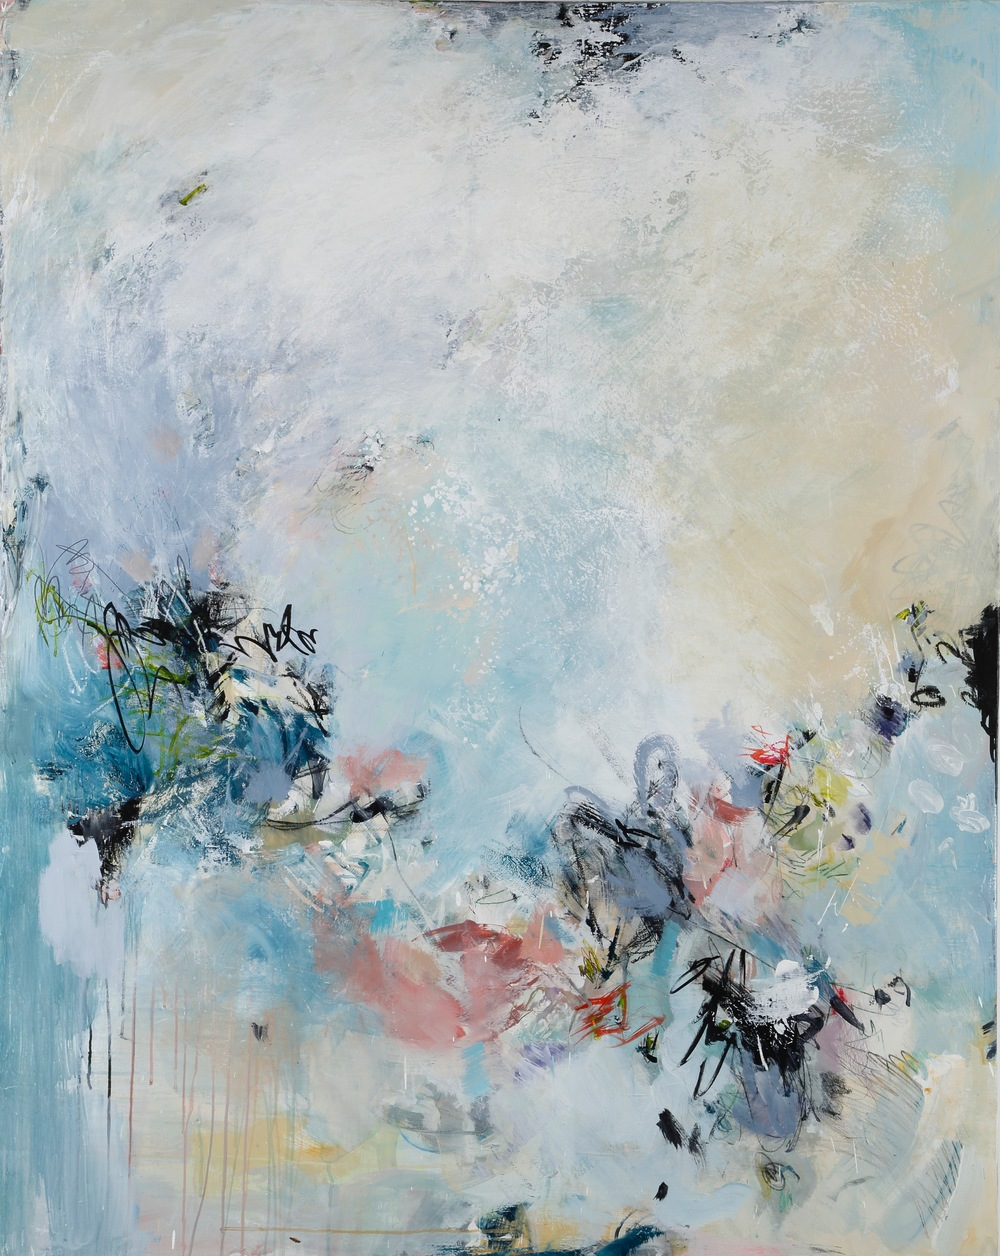 """Dive In"" by Teri Dryden, 36x48in, acrylic on canvas, $2500 